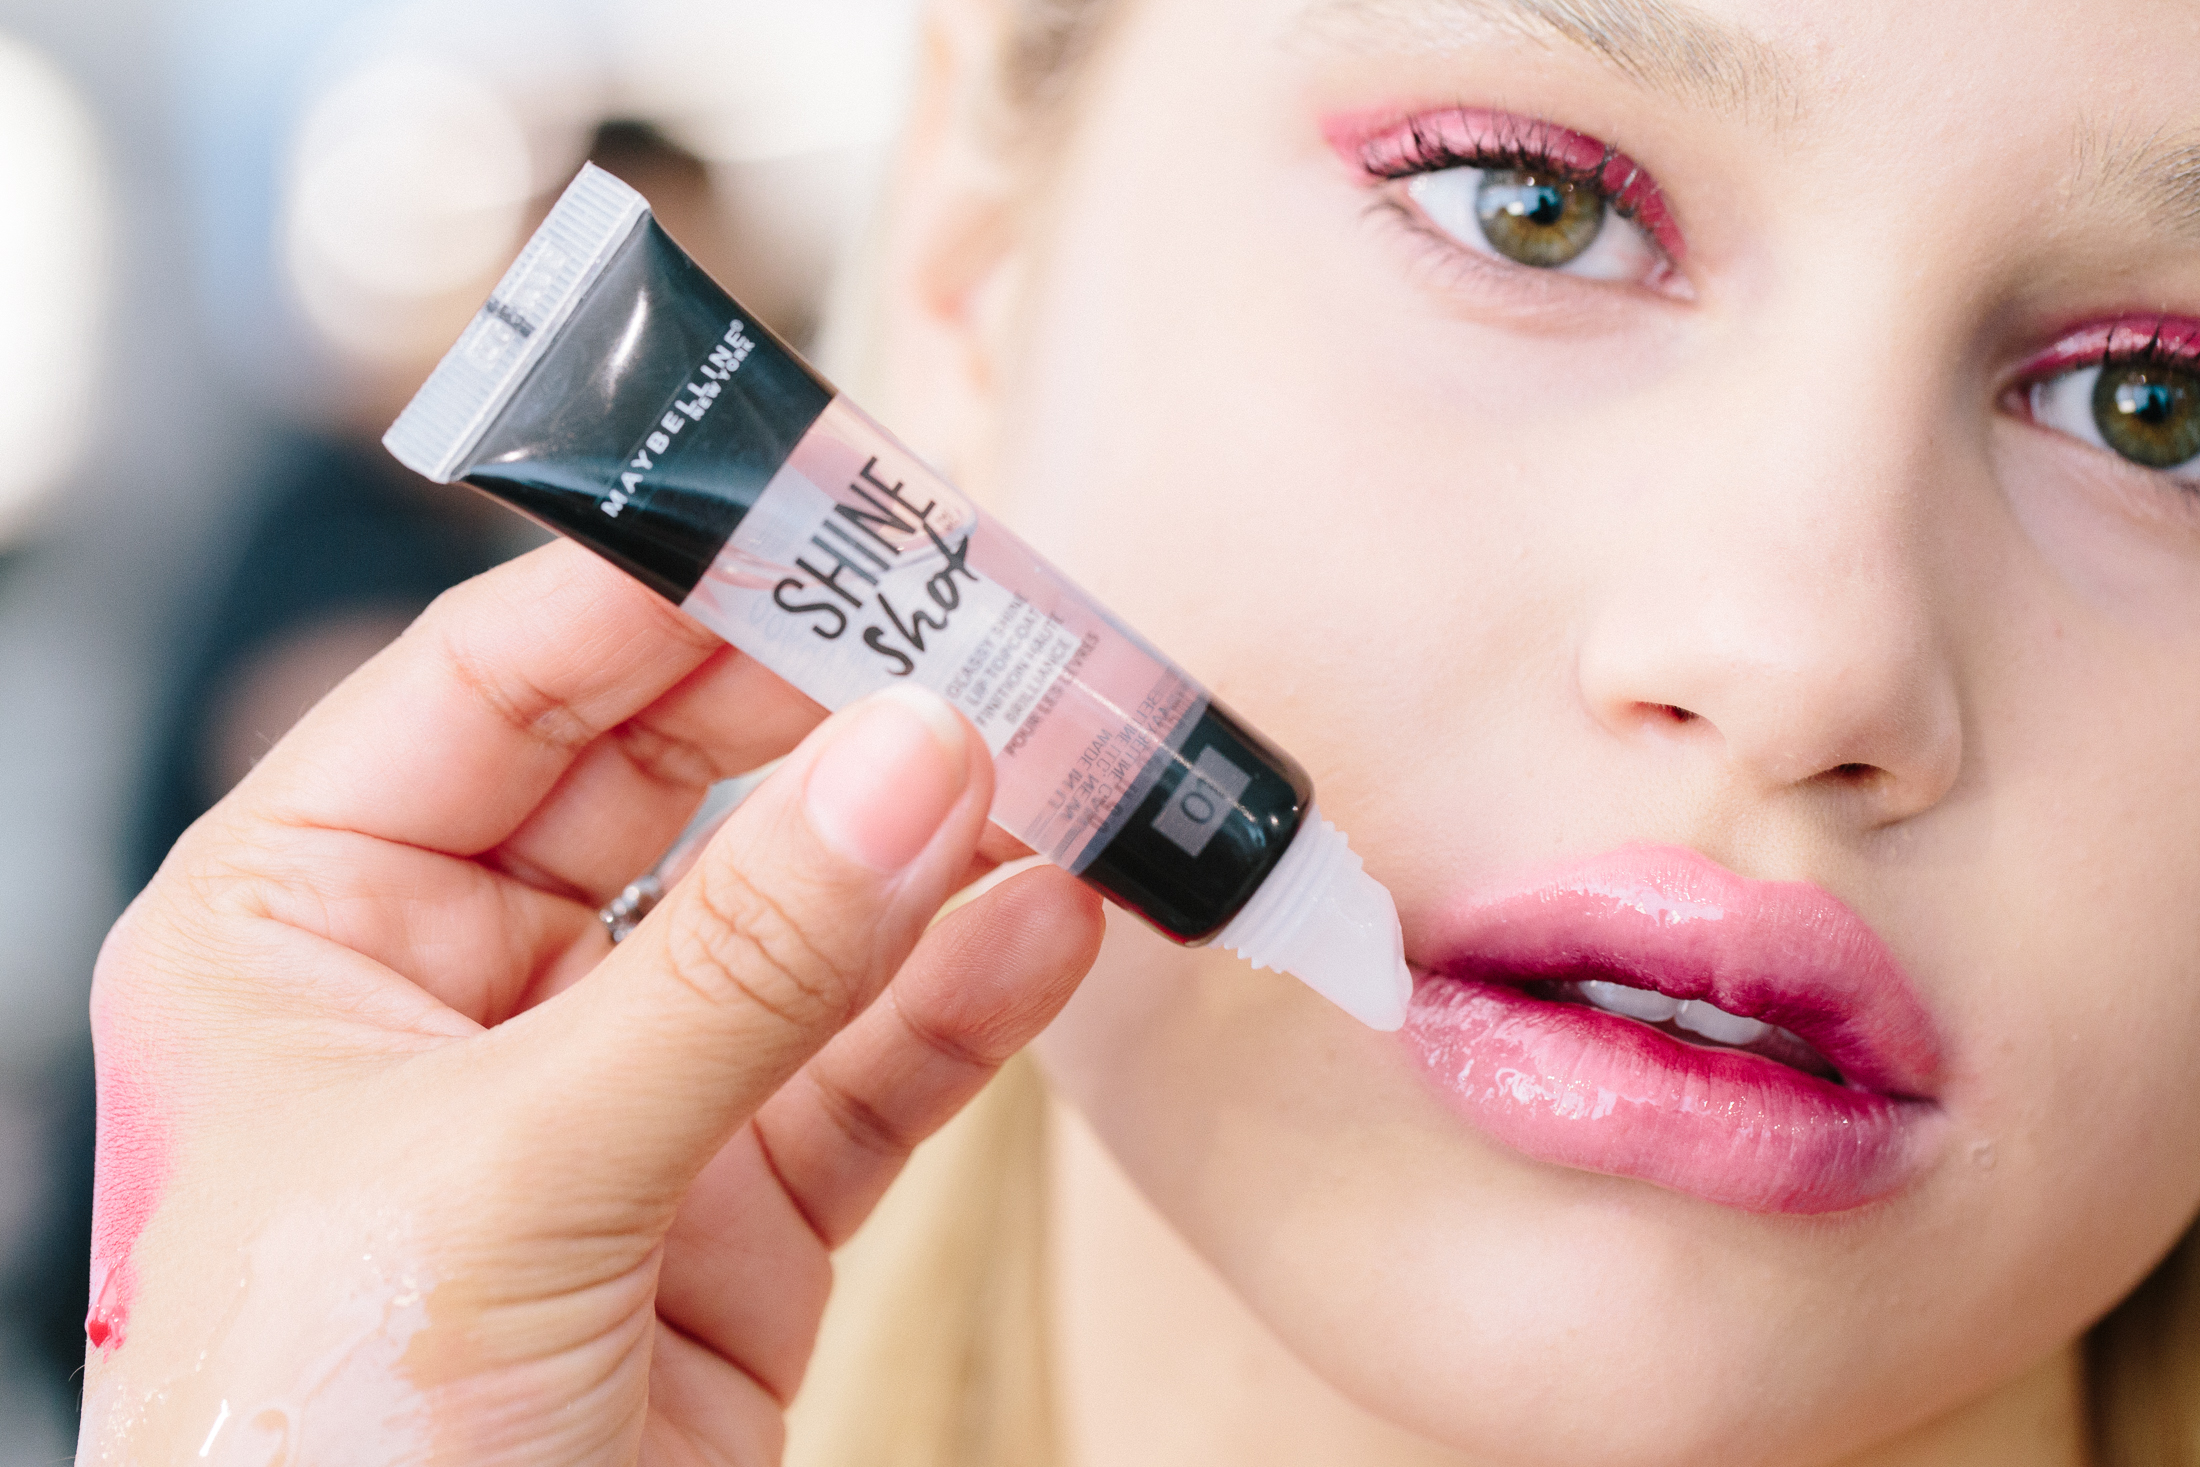 nyfw-maybelline-ny-ottolinger-grace-lee-by-maybelline-ny-6